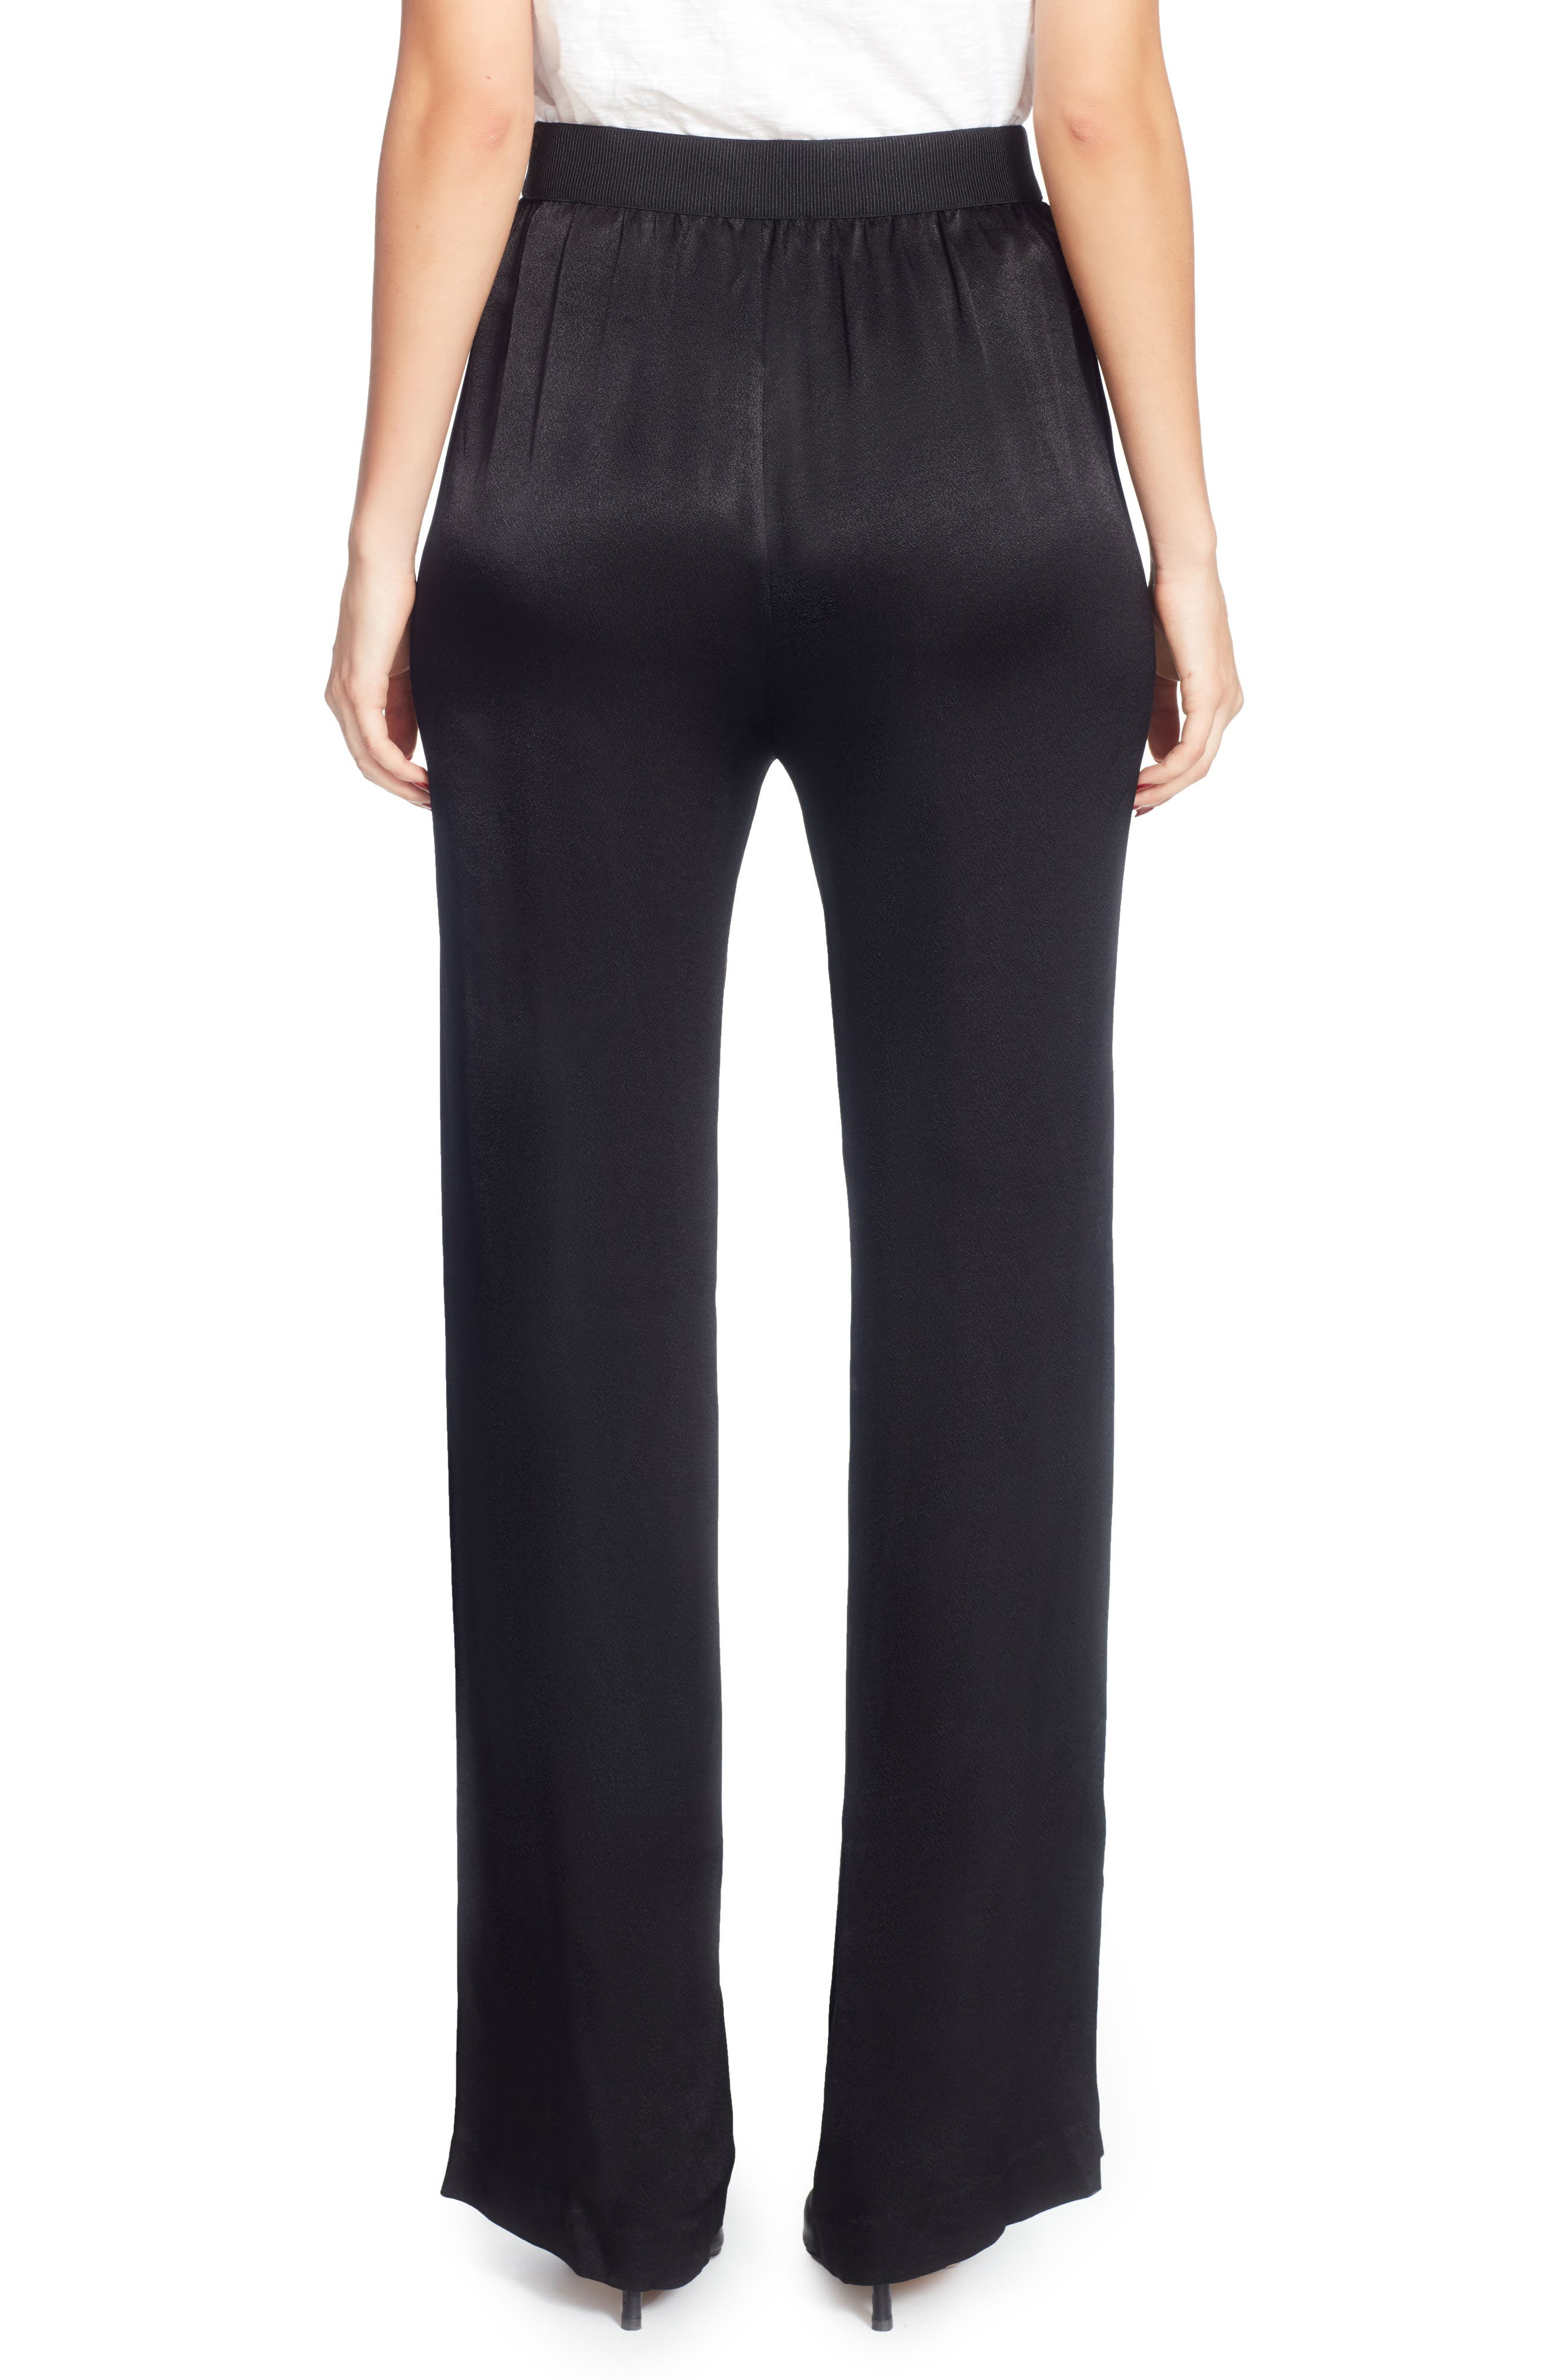 Lief Wide-Leg Pants,                             Alternate thumbnail 2, color,                             Black